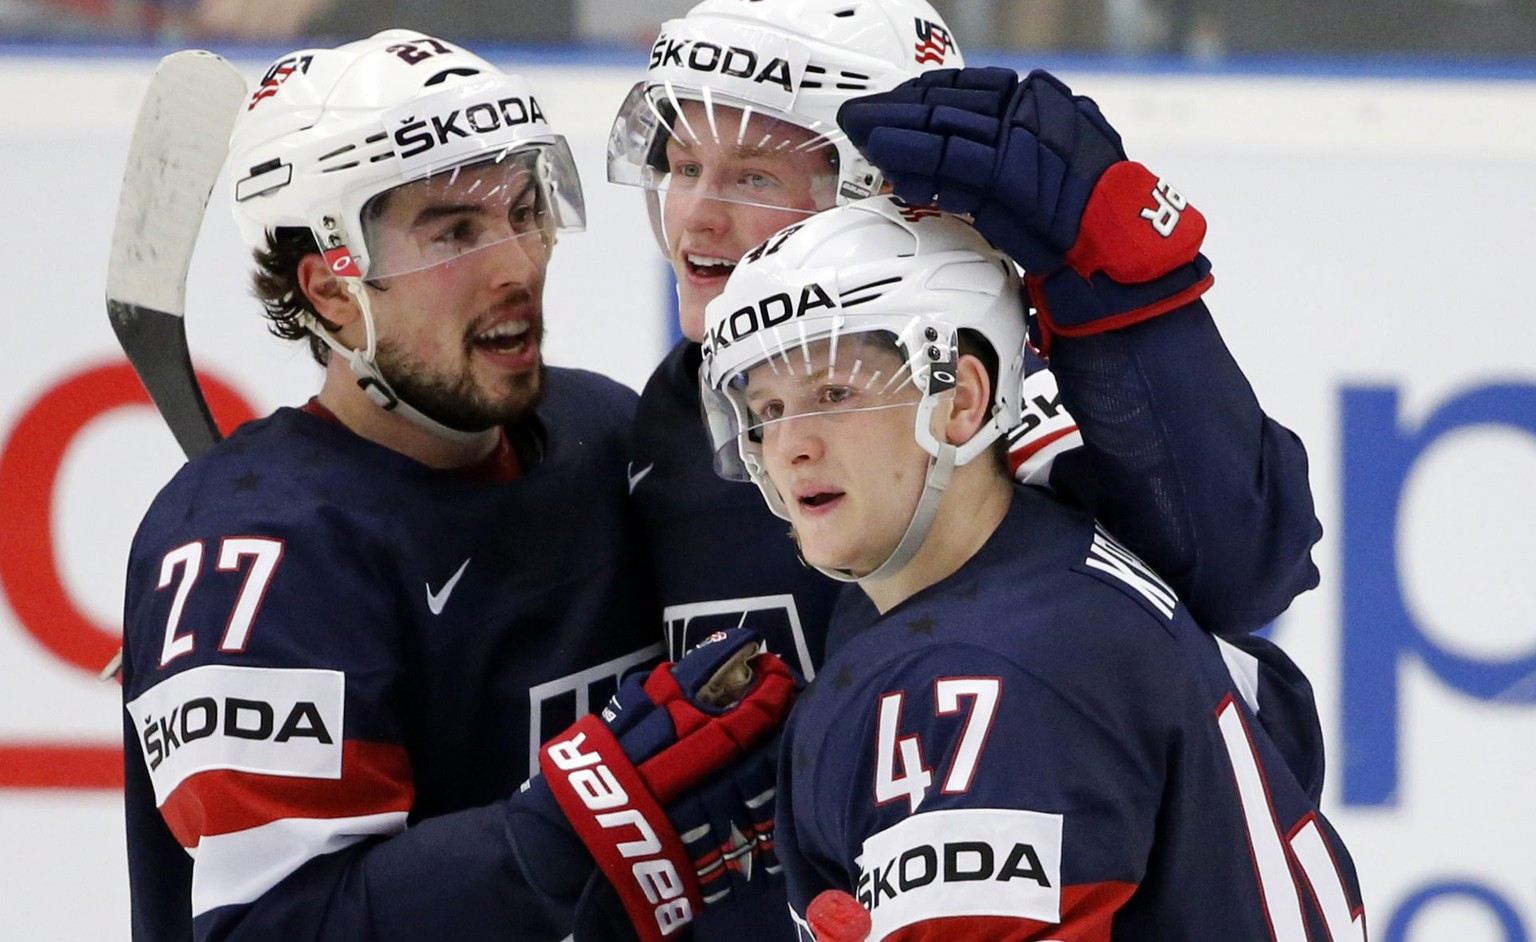 epa04744988 Justin Faulk (L), Jack Eichel (C) and Torey Krug (R) of the USA celebrate their victory after scoring a golden goal at the Ice Hockey World Championship 2015 group B match between the USA and Slovakia at CEZ Arena in Ostrava, Czech Republic, 12 May 2015.  EPA/ARMANDO BABANI